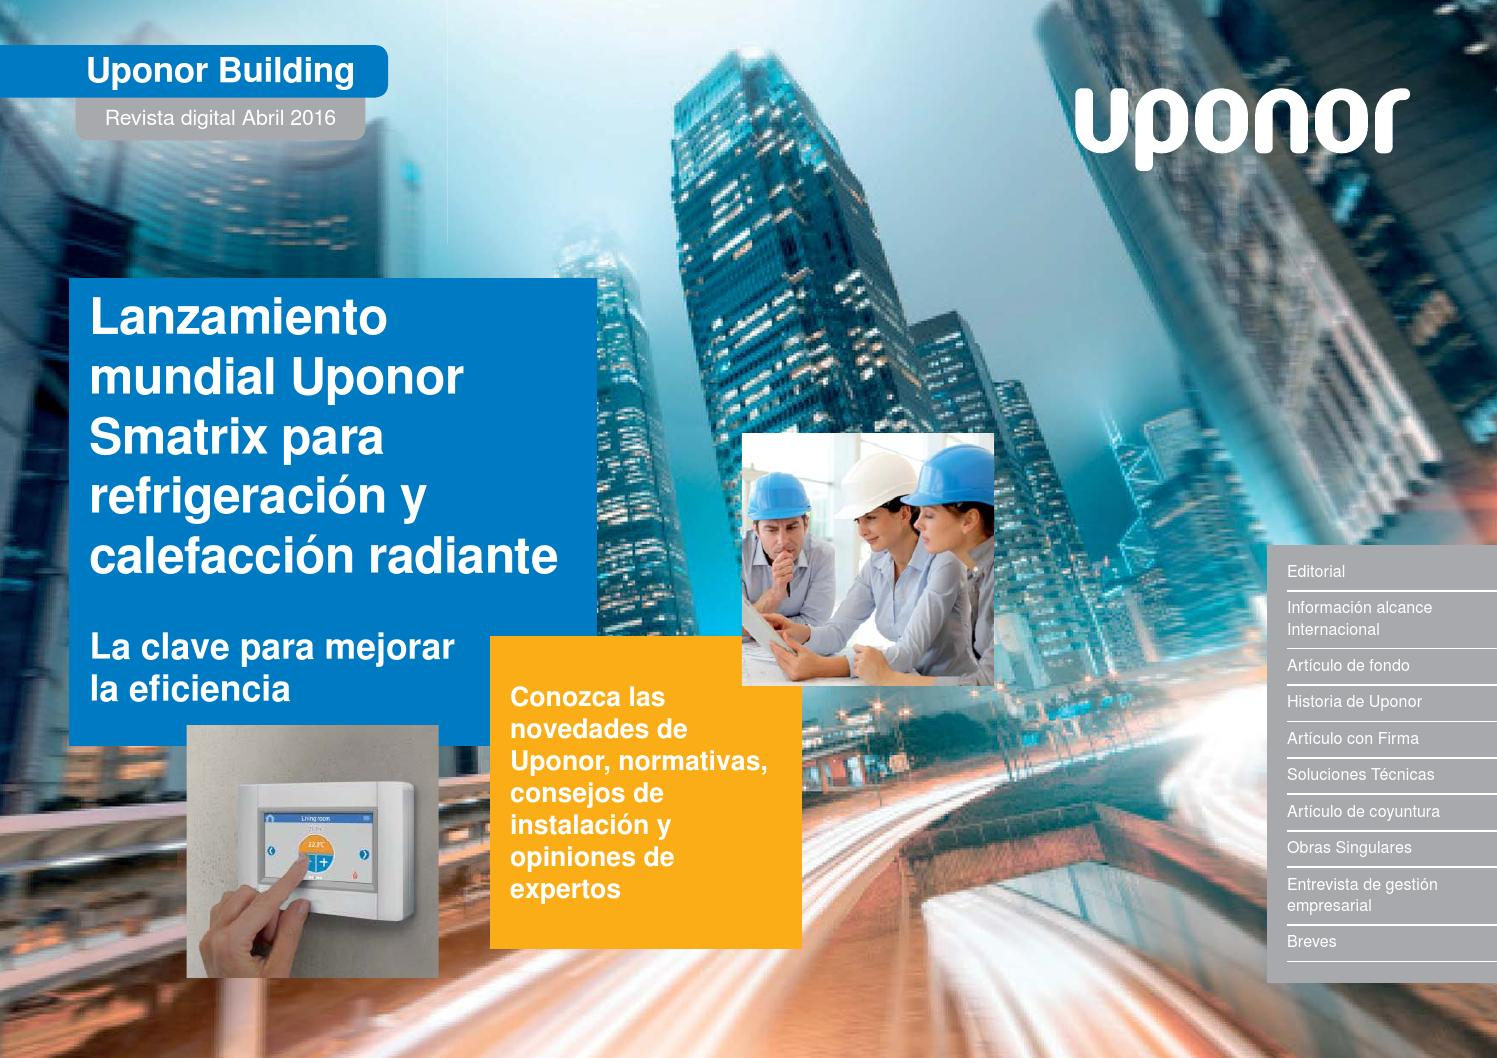 Refrigeracion Por Suelo Radiante Opiniones Newsletter Abril 2016 By Uponor Spain Issuu